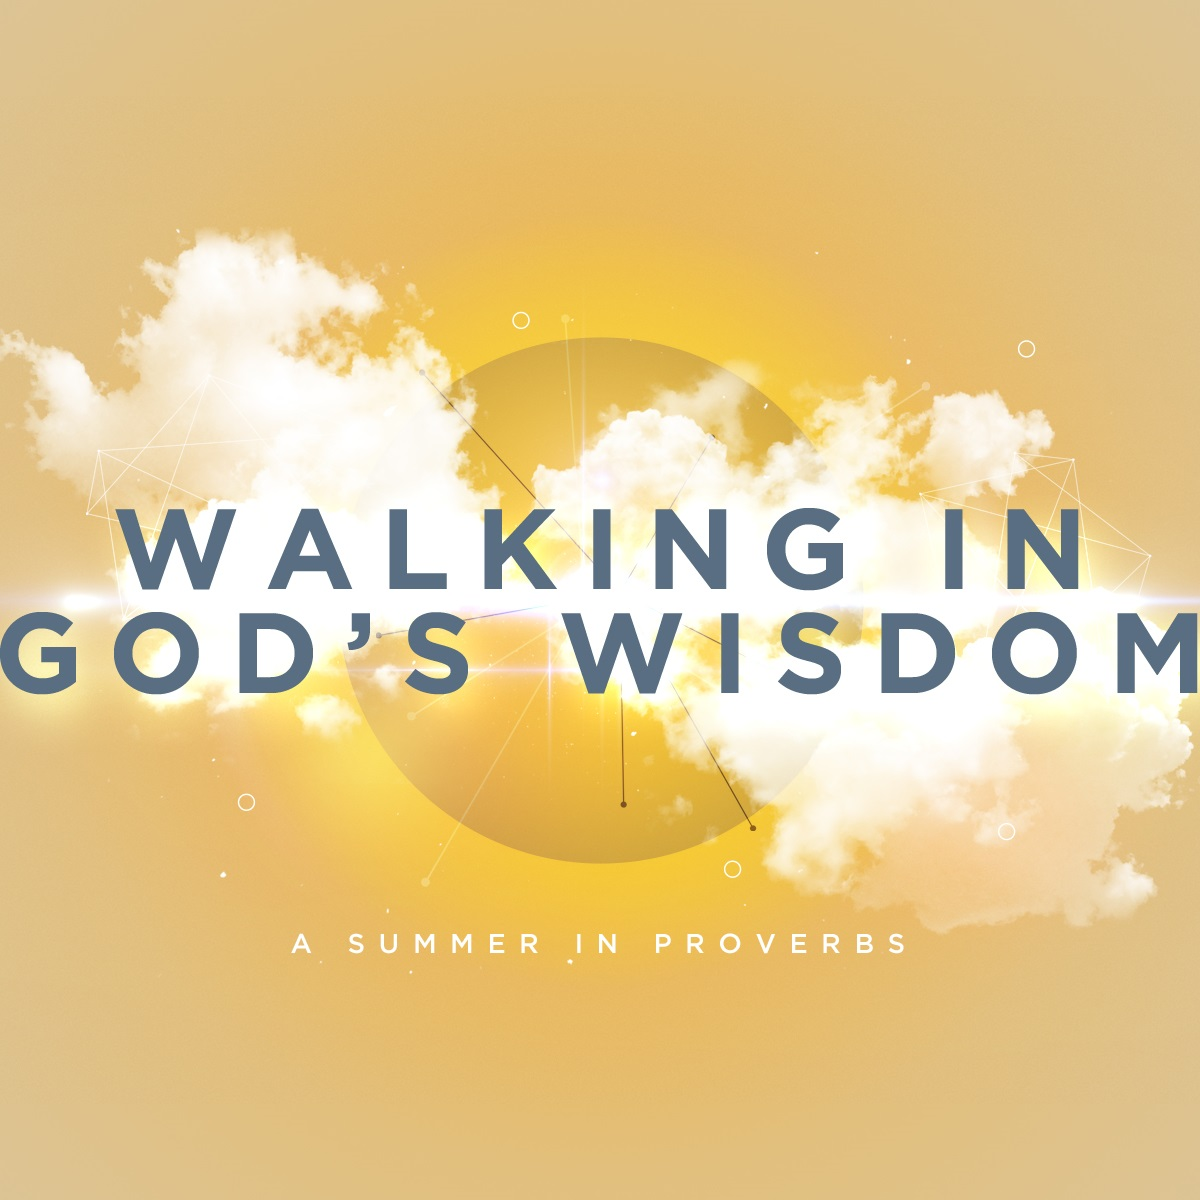 Walking in God's Wisdom – Building Wisdom Through Humility